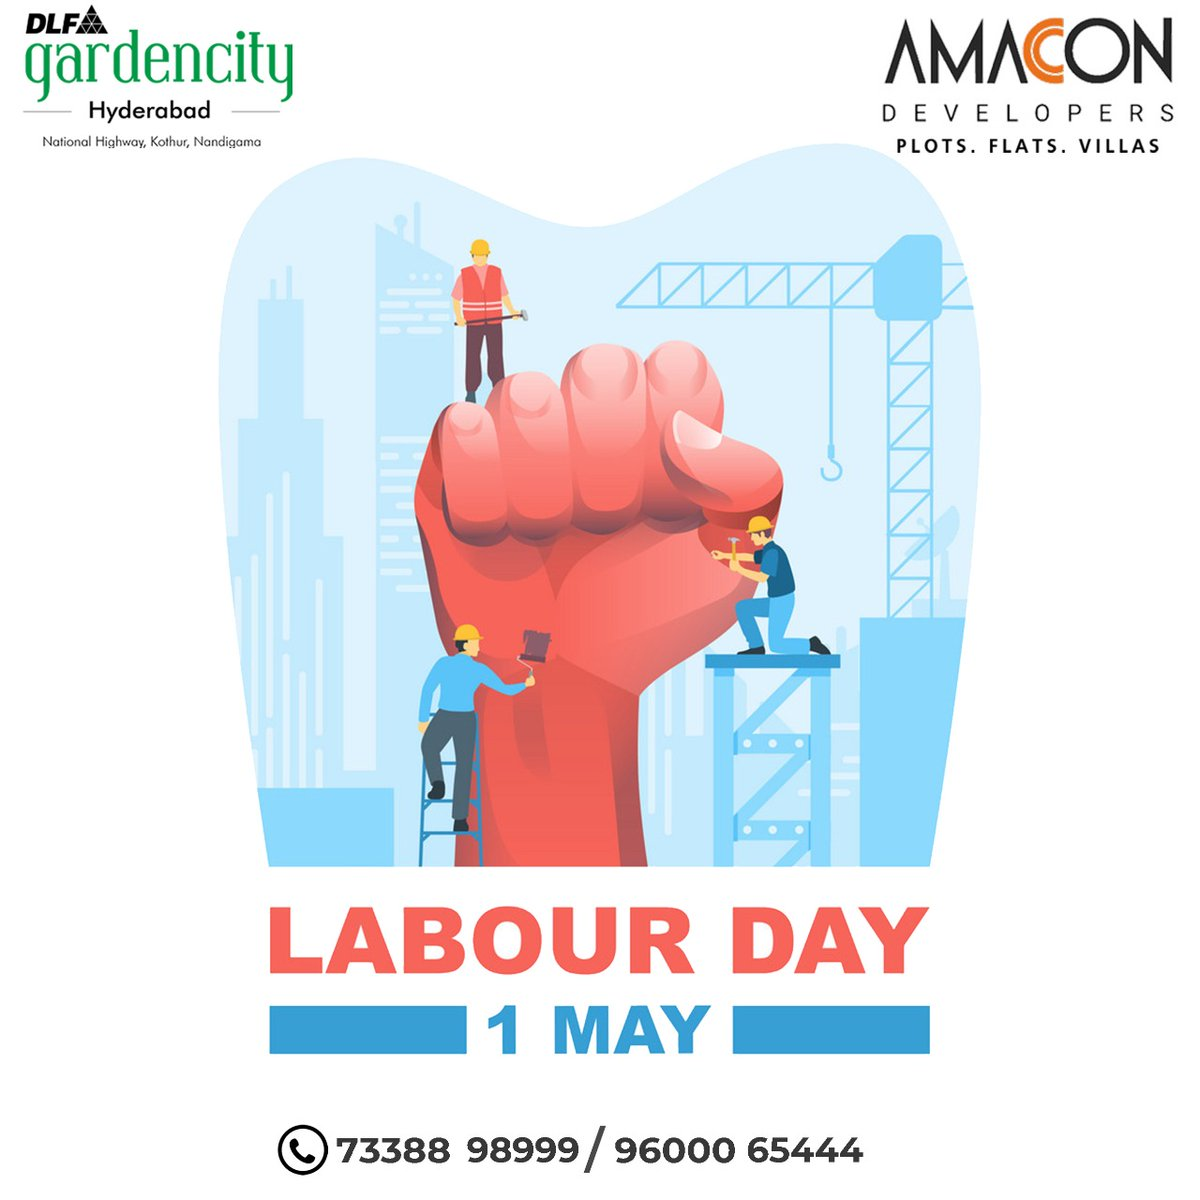 With hard work comes great satisfaction.  Happy May Day.  #Mayday #Labourday #Mayday2021 #Amacondevelopers https://t.co/TOk7YMRMoK